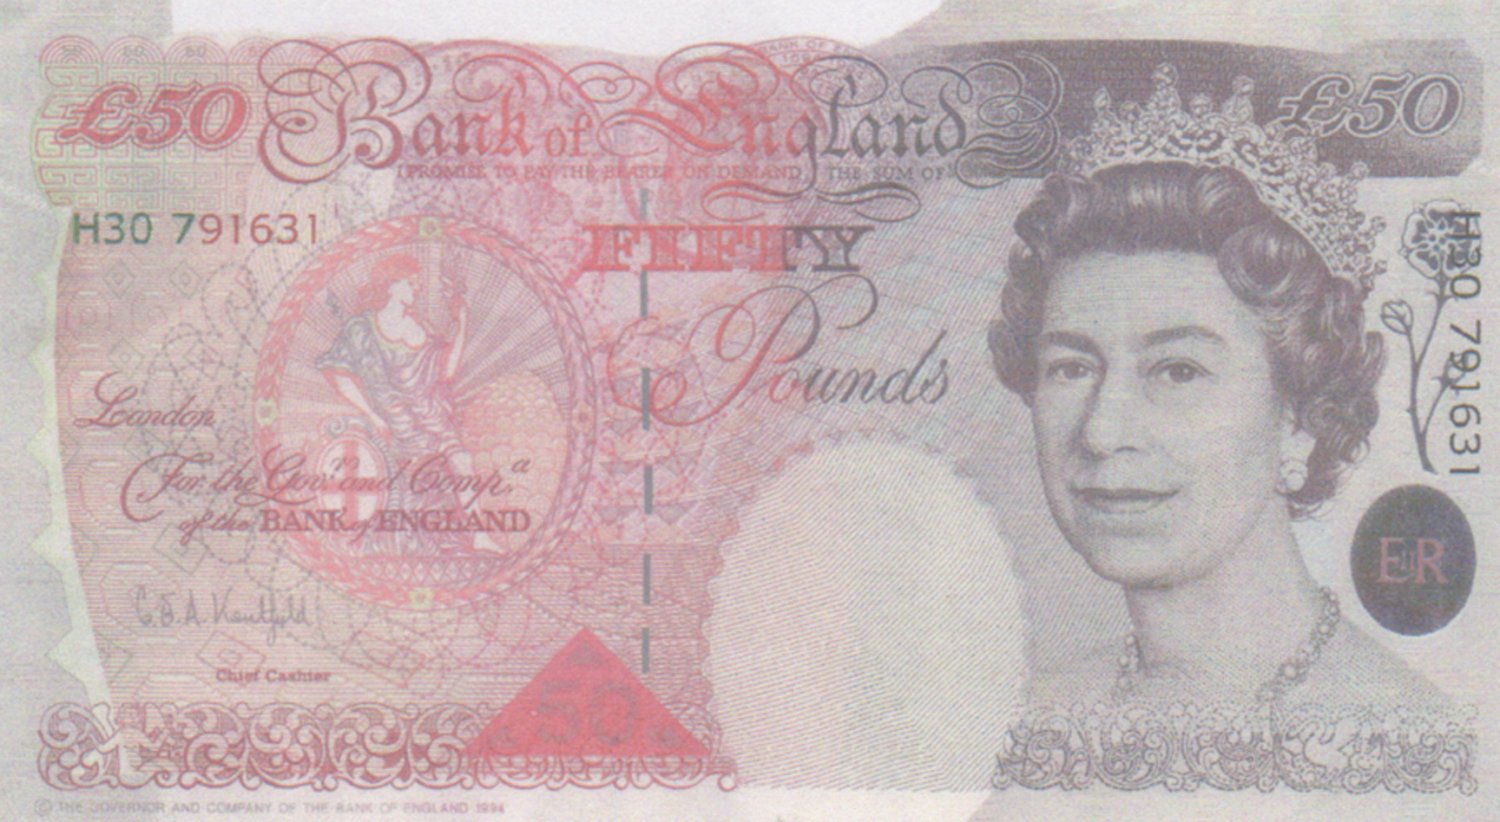 The World is Not Enough prop bank note James Bond movie